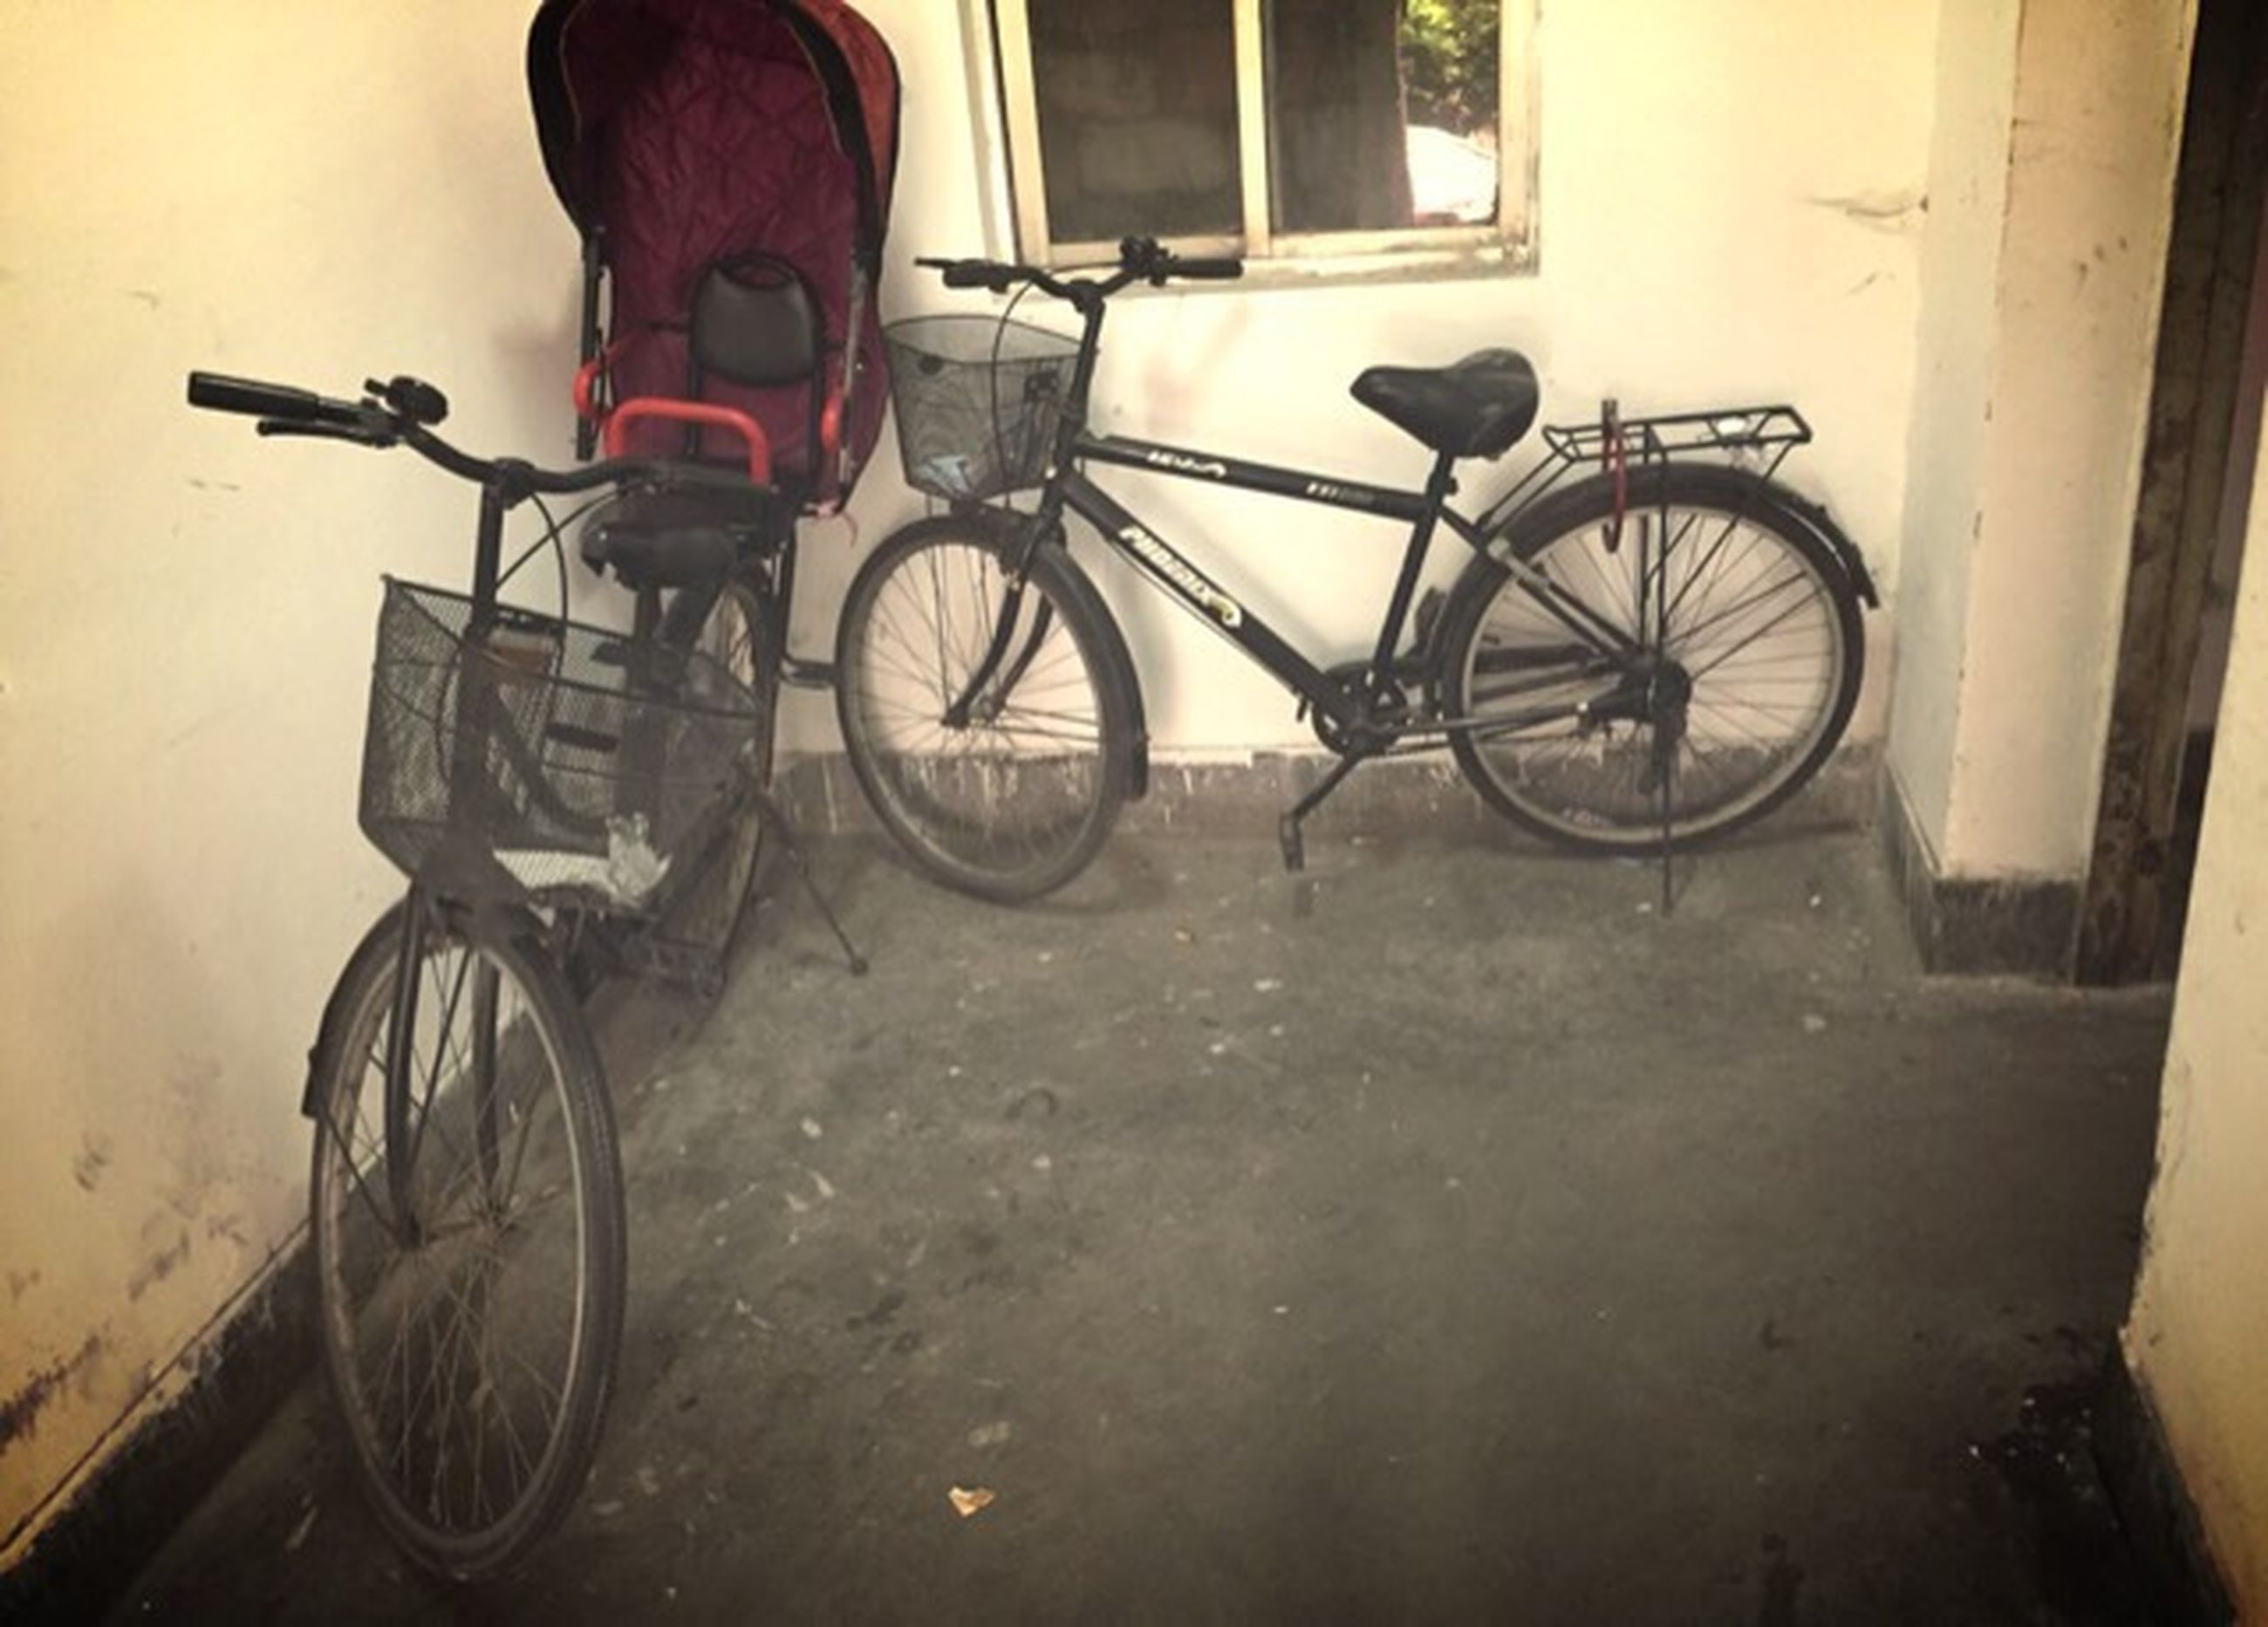 bicycle, mode of transport, stationary, transportation, land vehicle, parking, parked, built structure, architecture, wall - building feature, building exterior, wheel, house, day, door, window, street, leaning, wall, no people